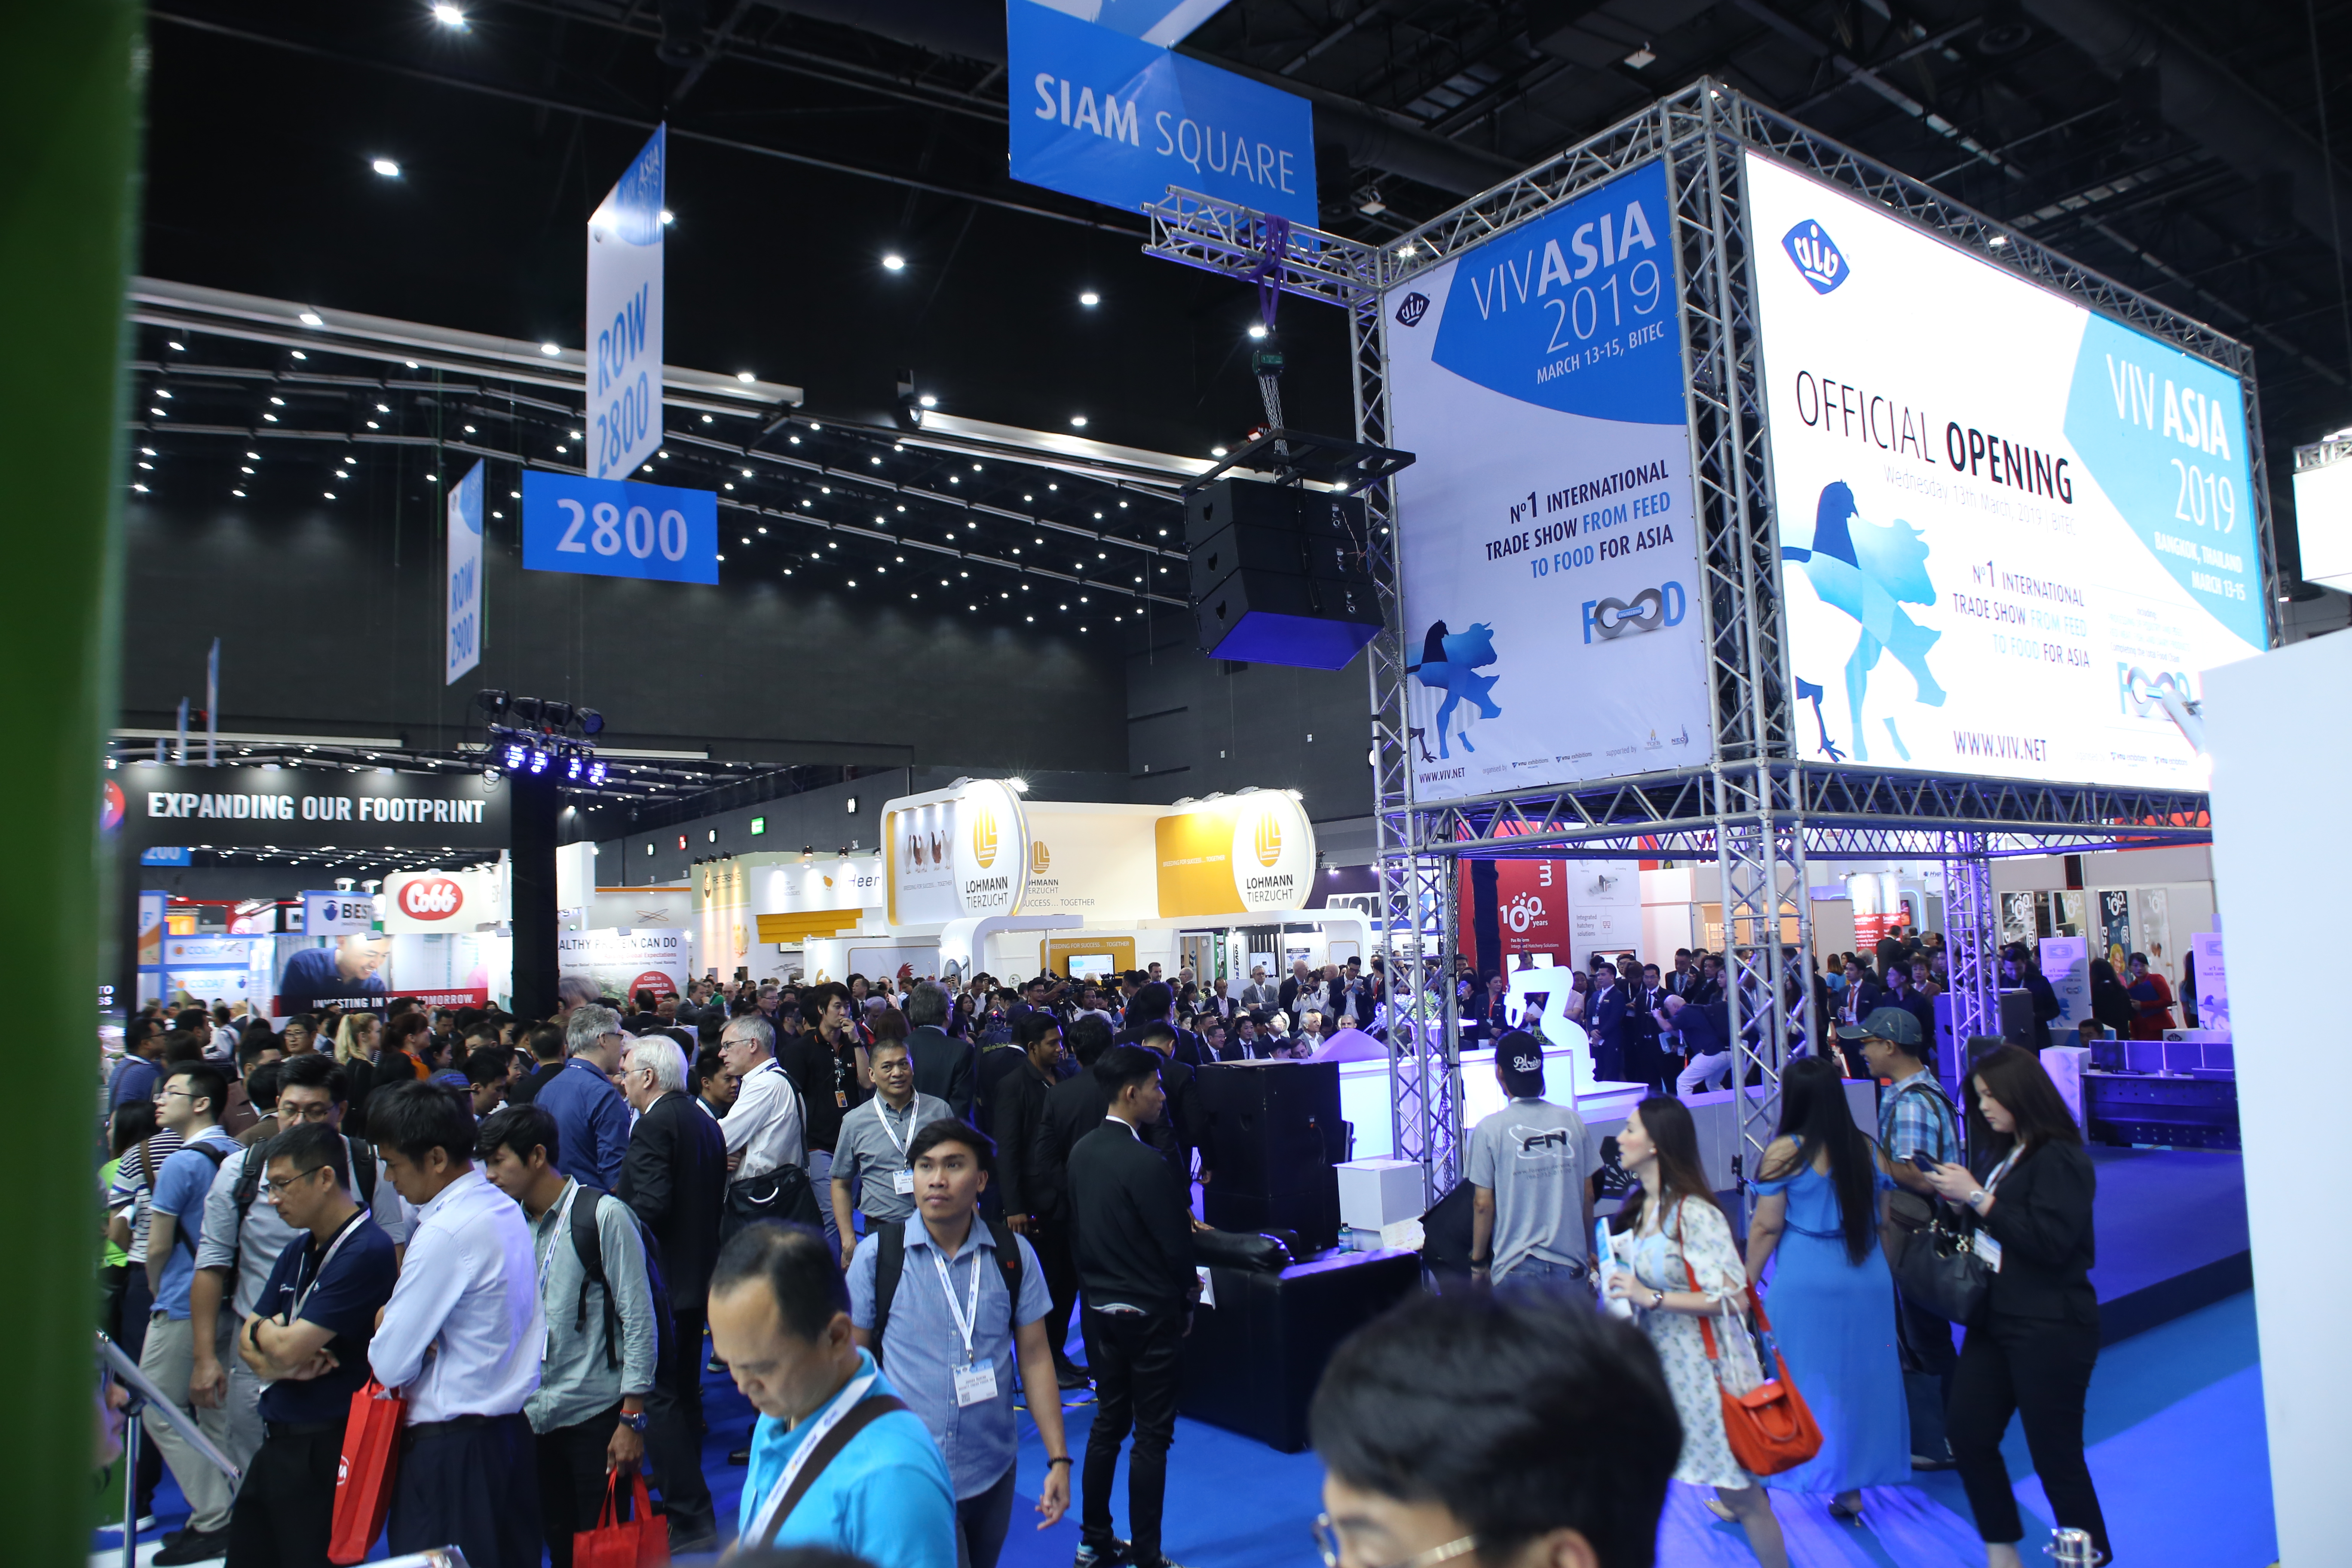 VIV Asia 2019 wins visitors' increase from overseas The show receives again more than 45,000 visits